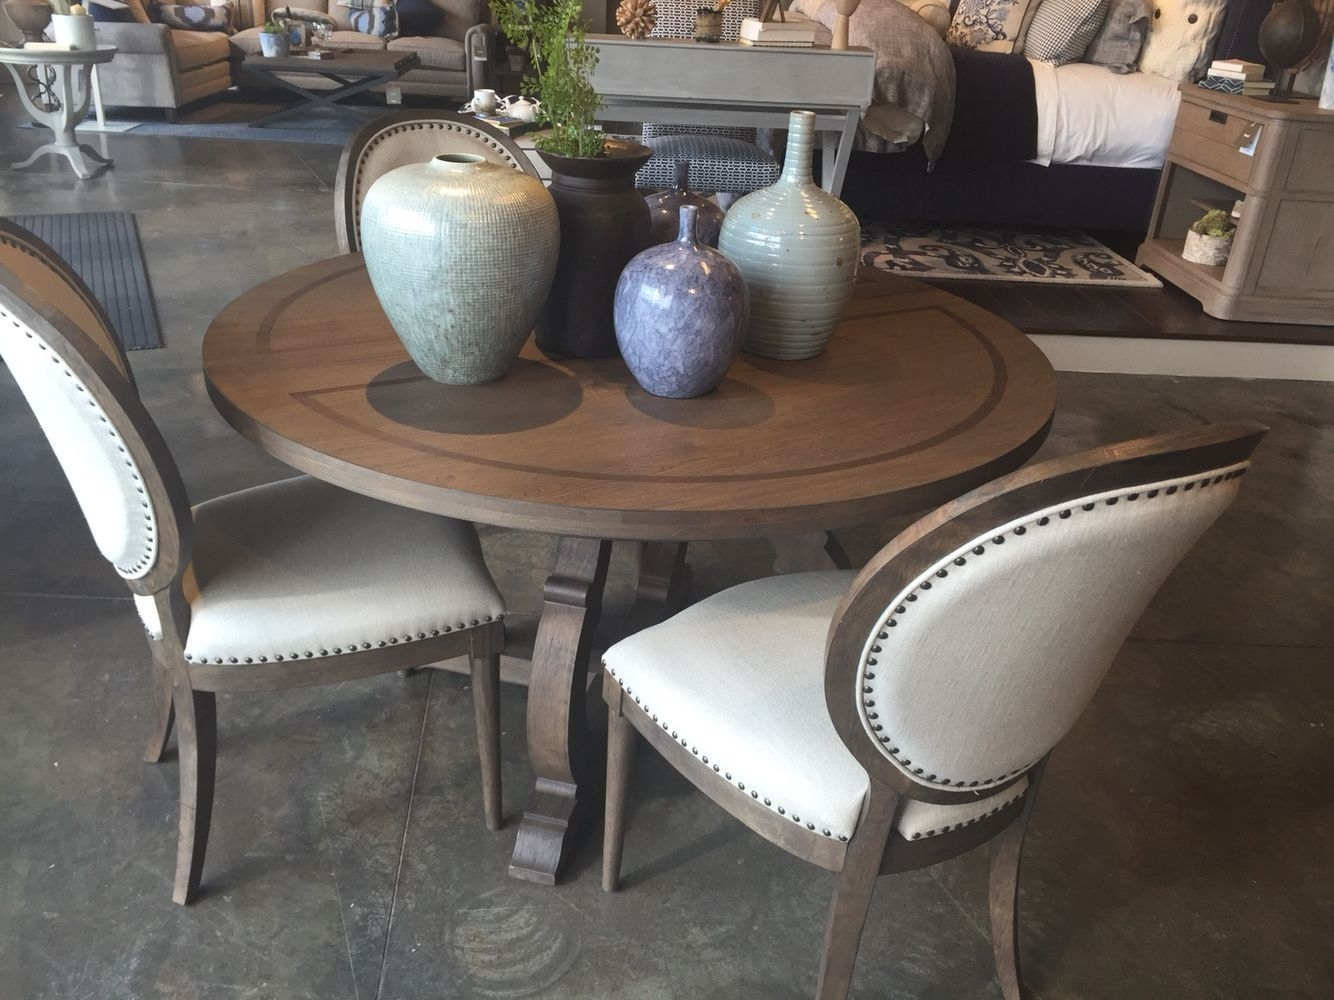 Bassett – Artisanal Round Table, Chadwick Brown | Hopkinton Dining For Current Artisanal Dining Tables (View 5 of 20)